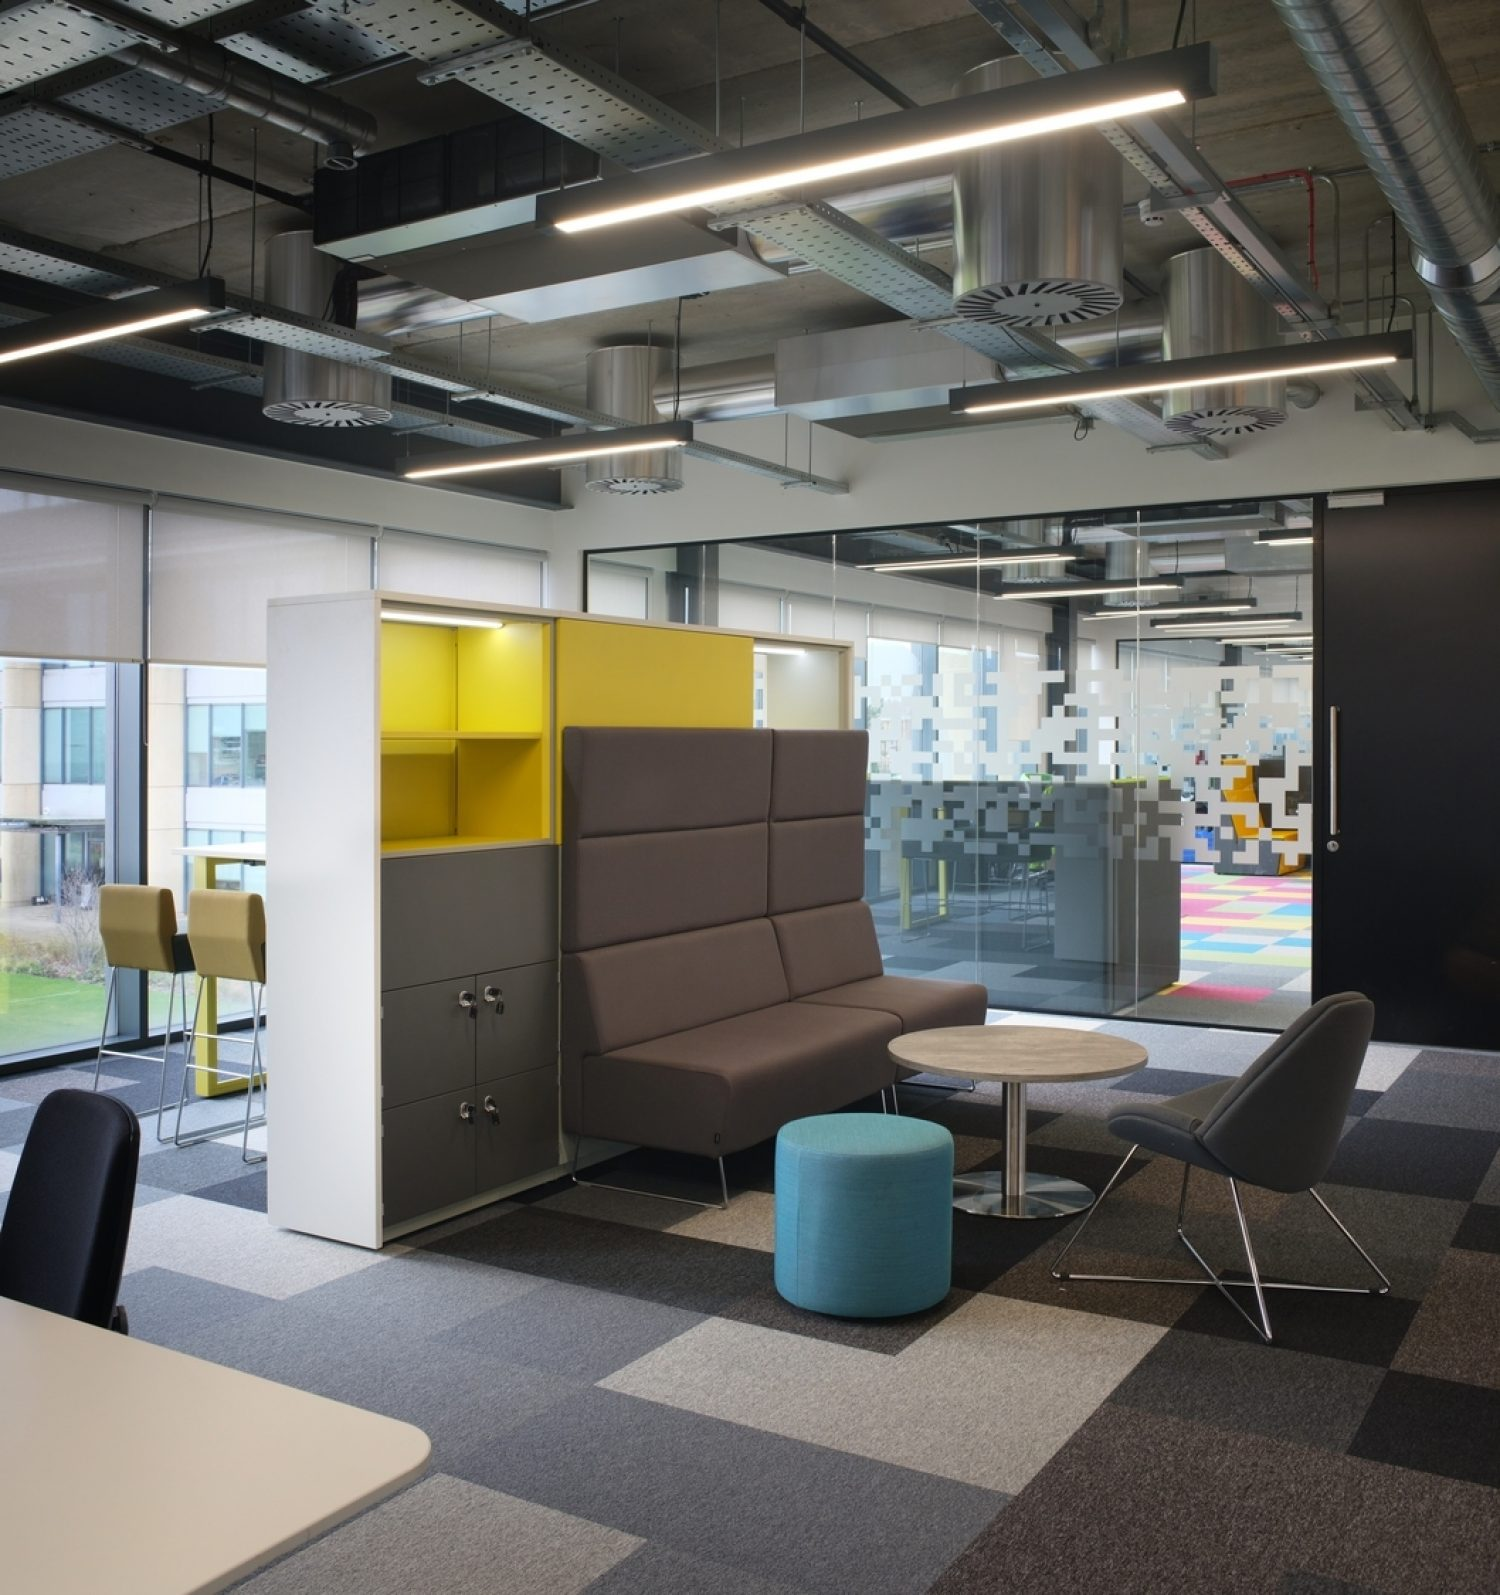 Office interior designed for teams